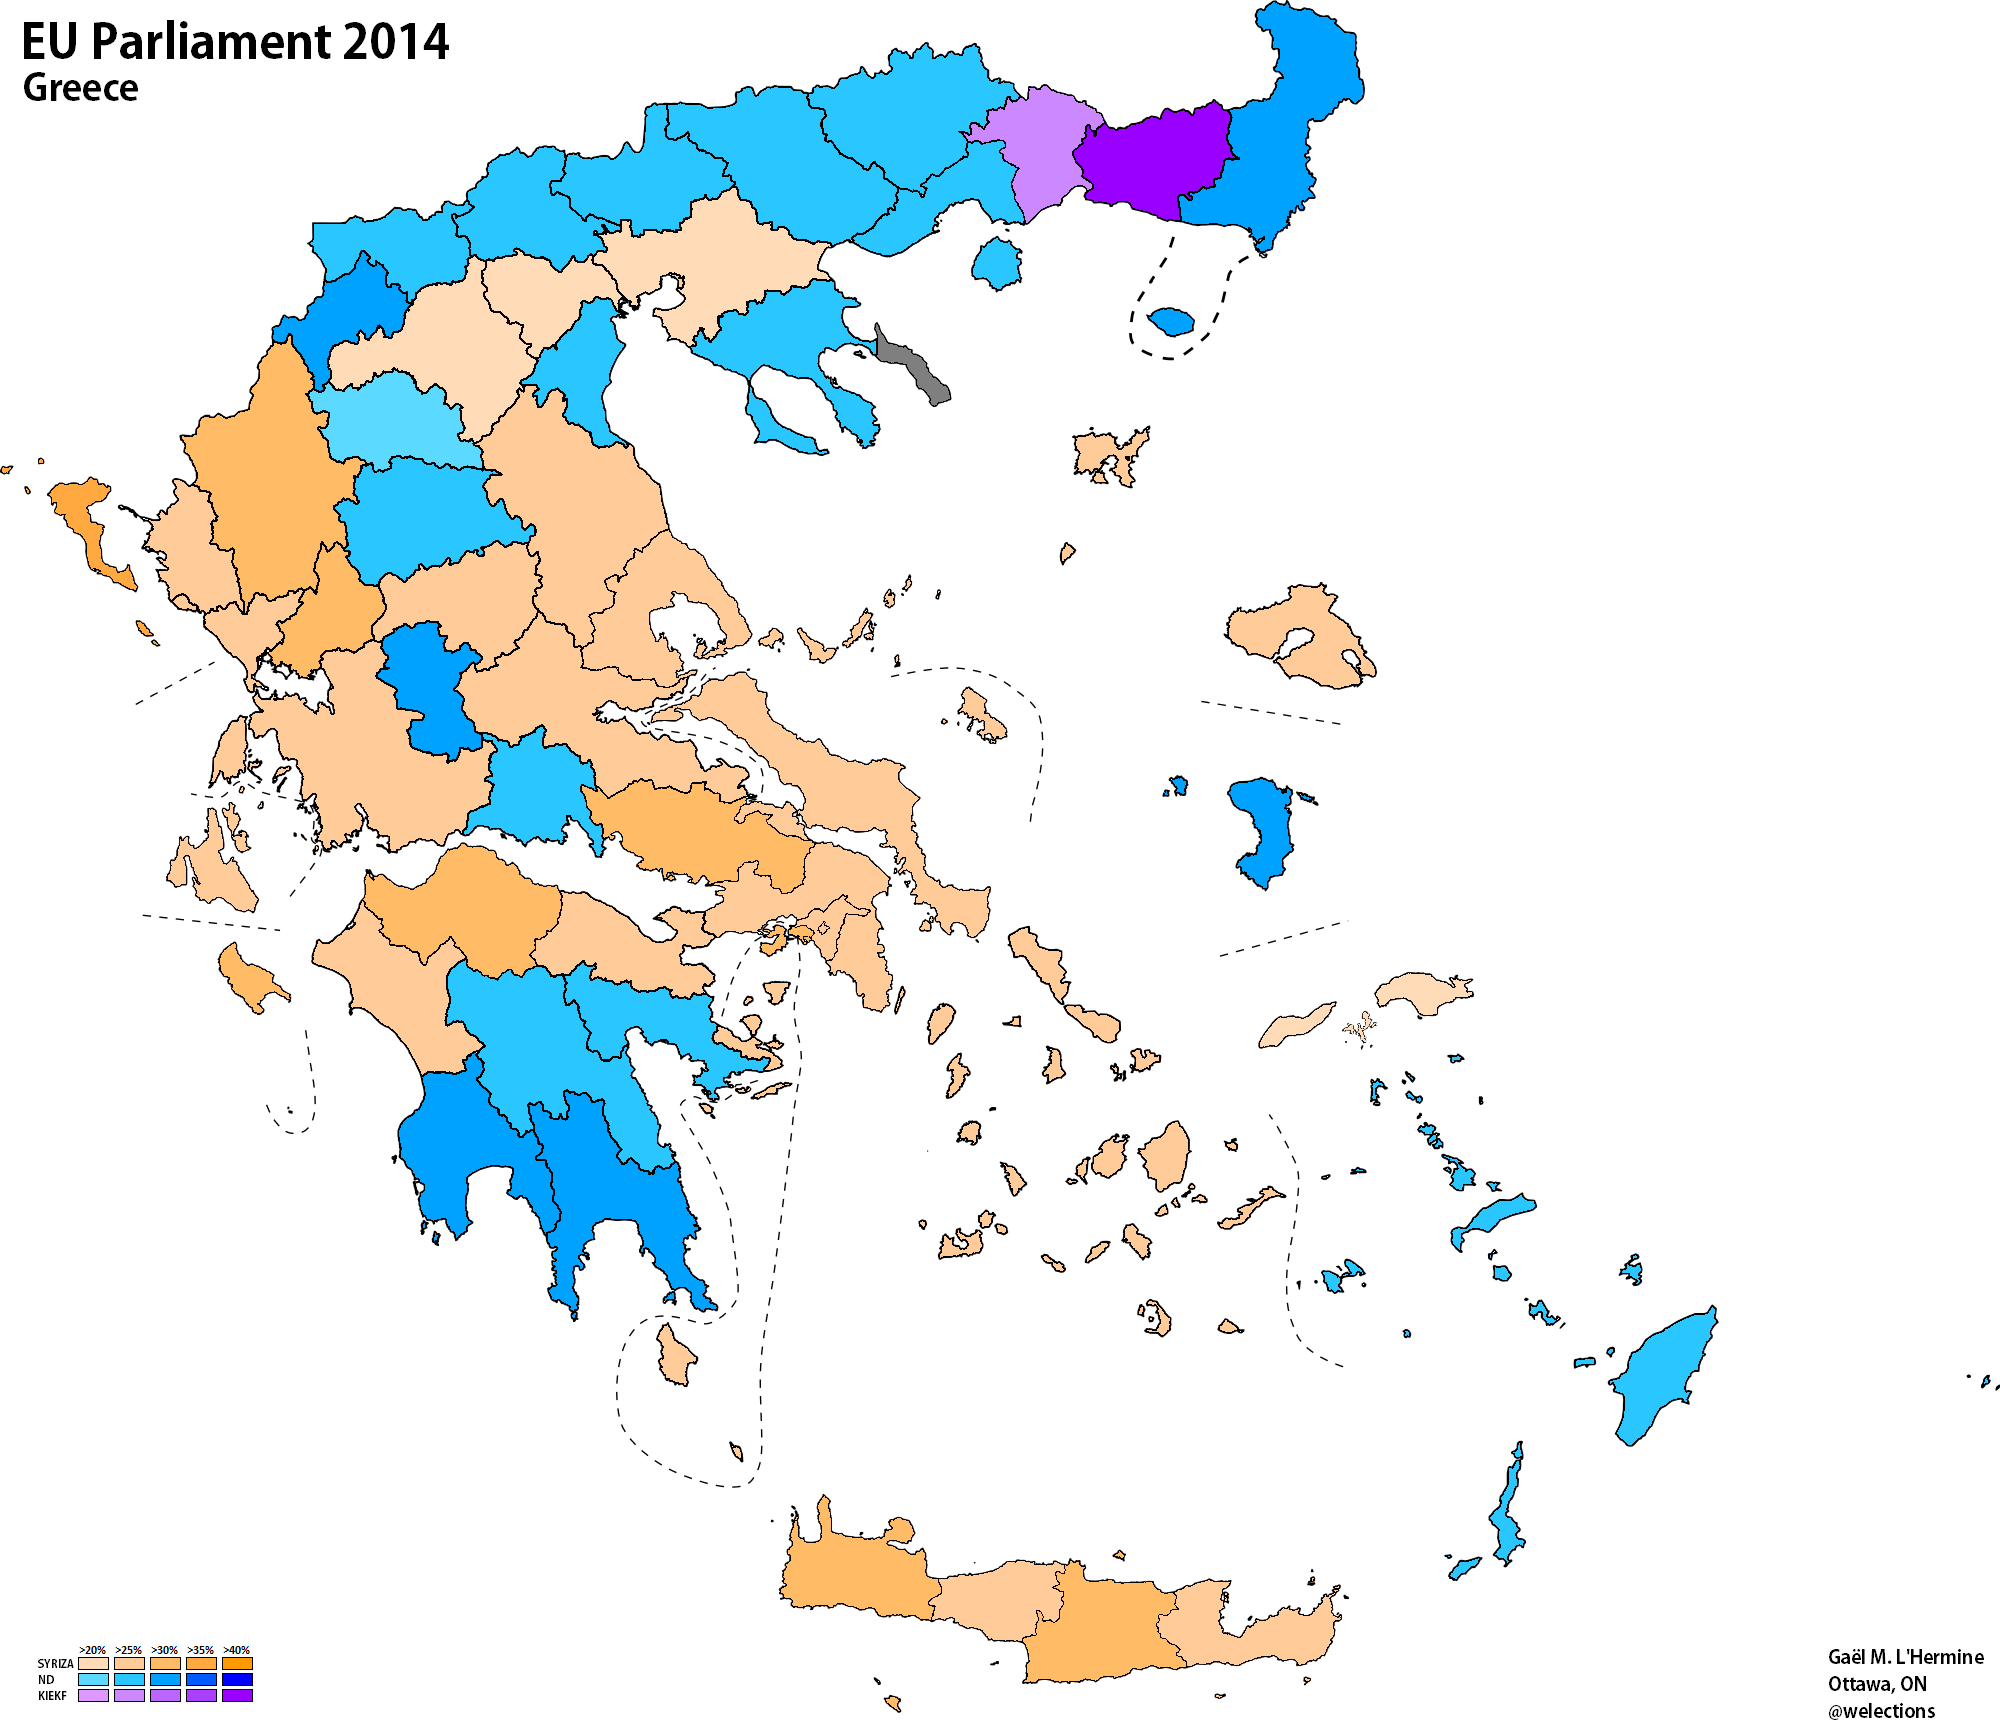 greece-2014-ep.png